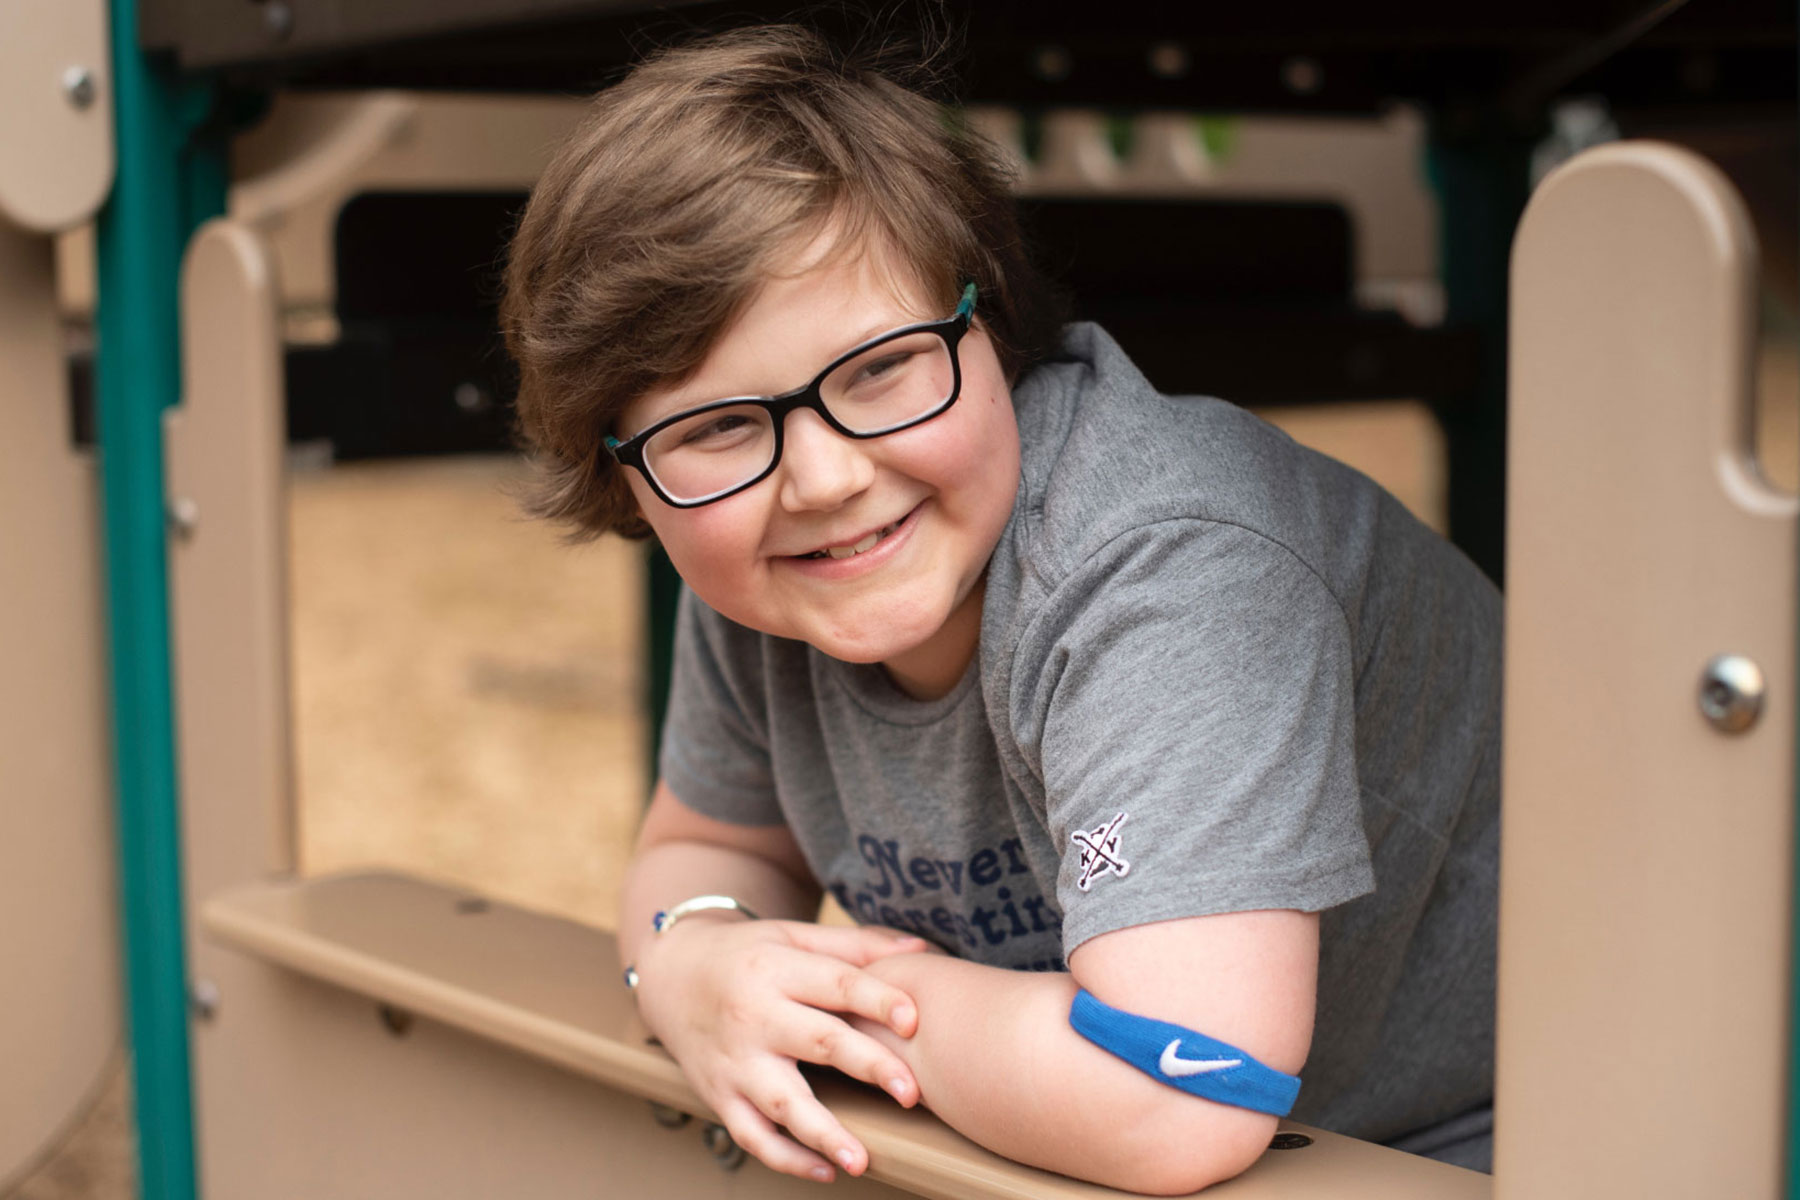 A portrait of Ellie Hurley, a young girl with short brown hair and glasses, wearing a gray t-shirt, posing on a playground. She is smiling while looking away from the camera.